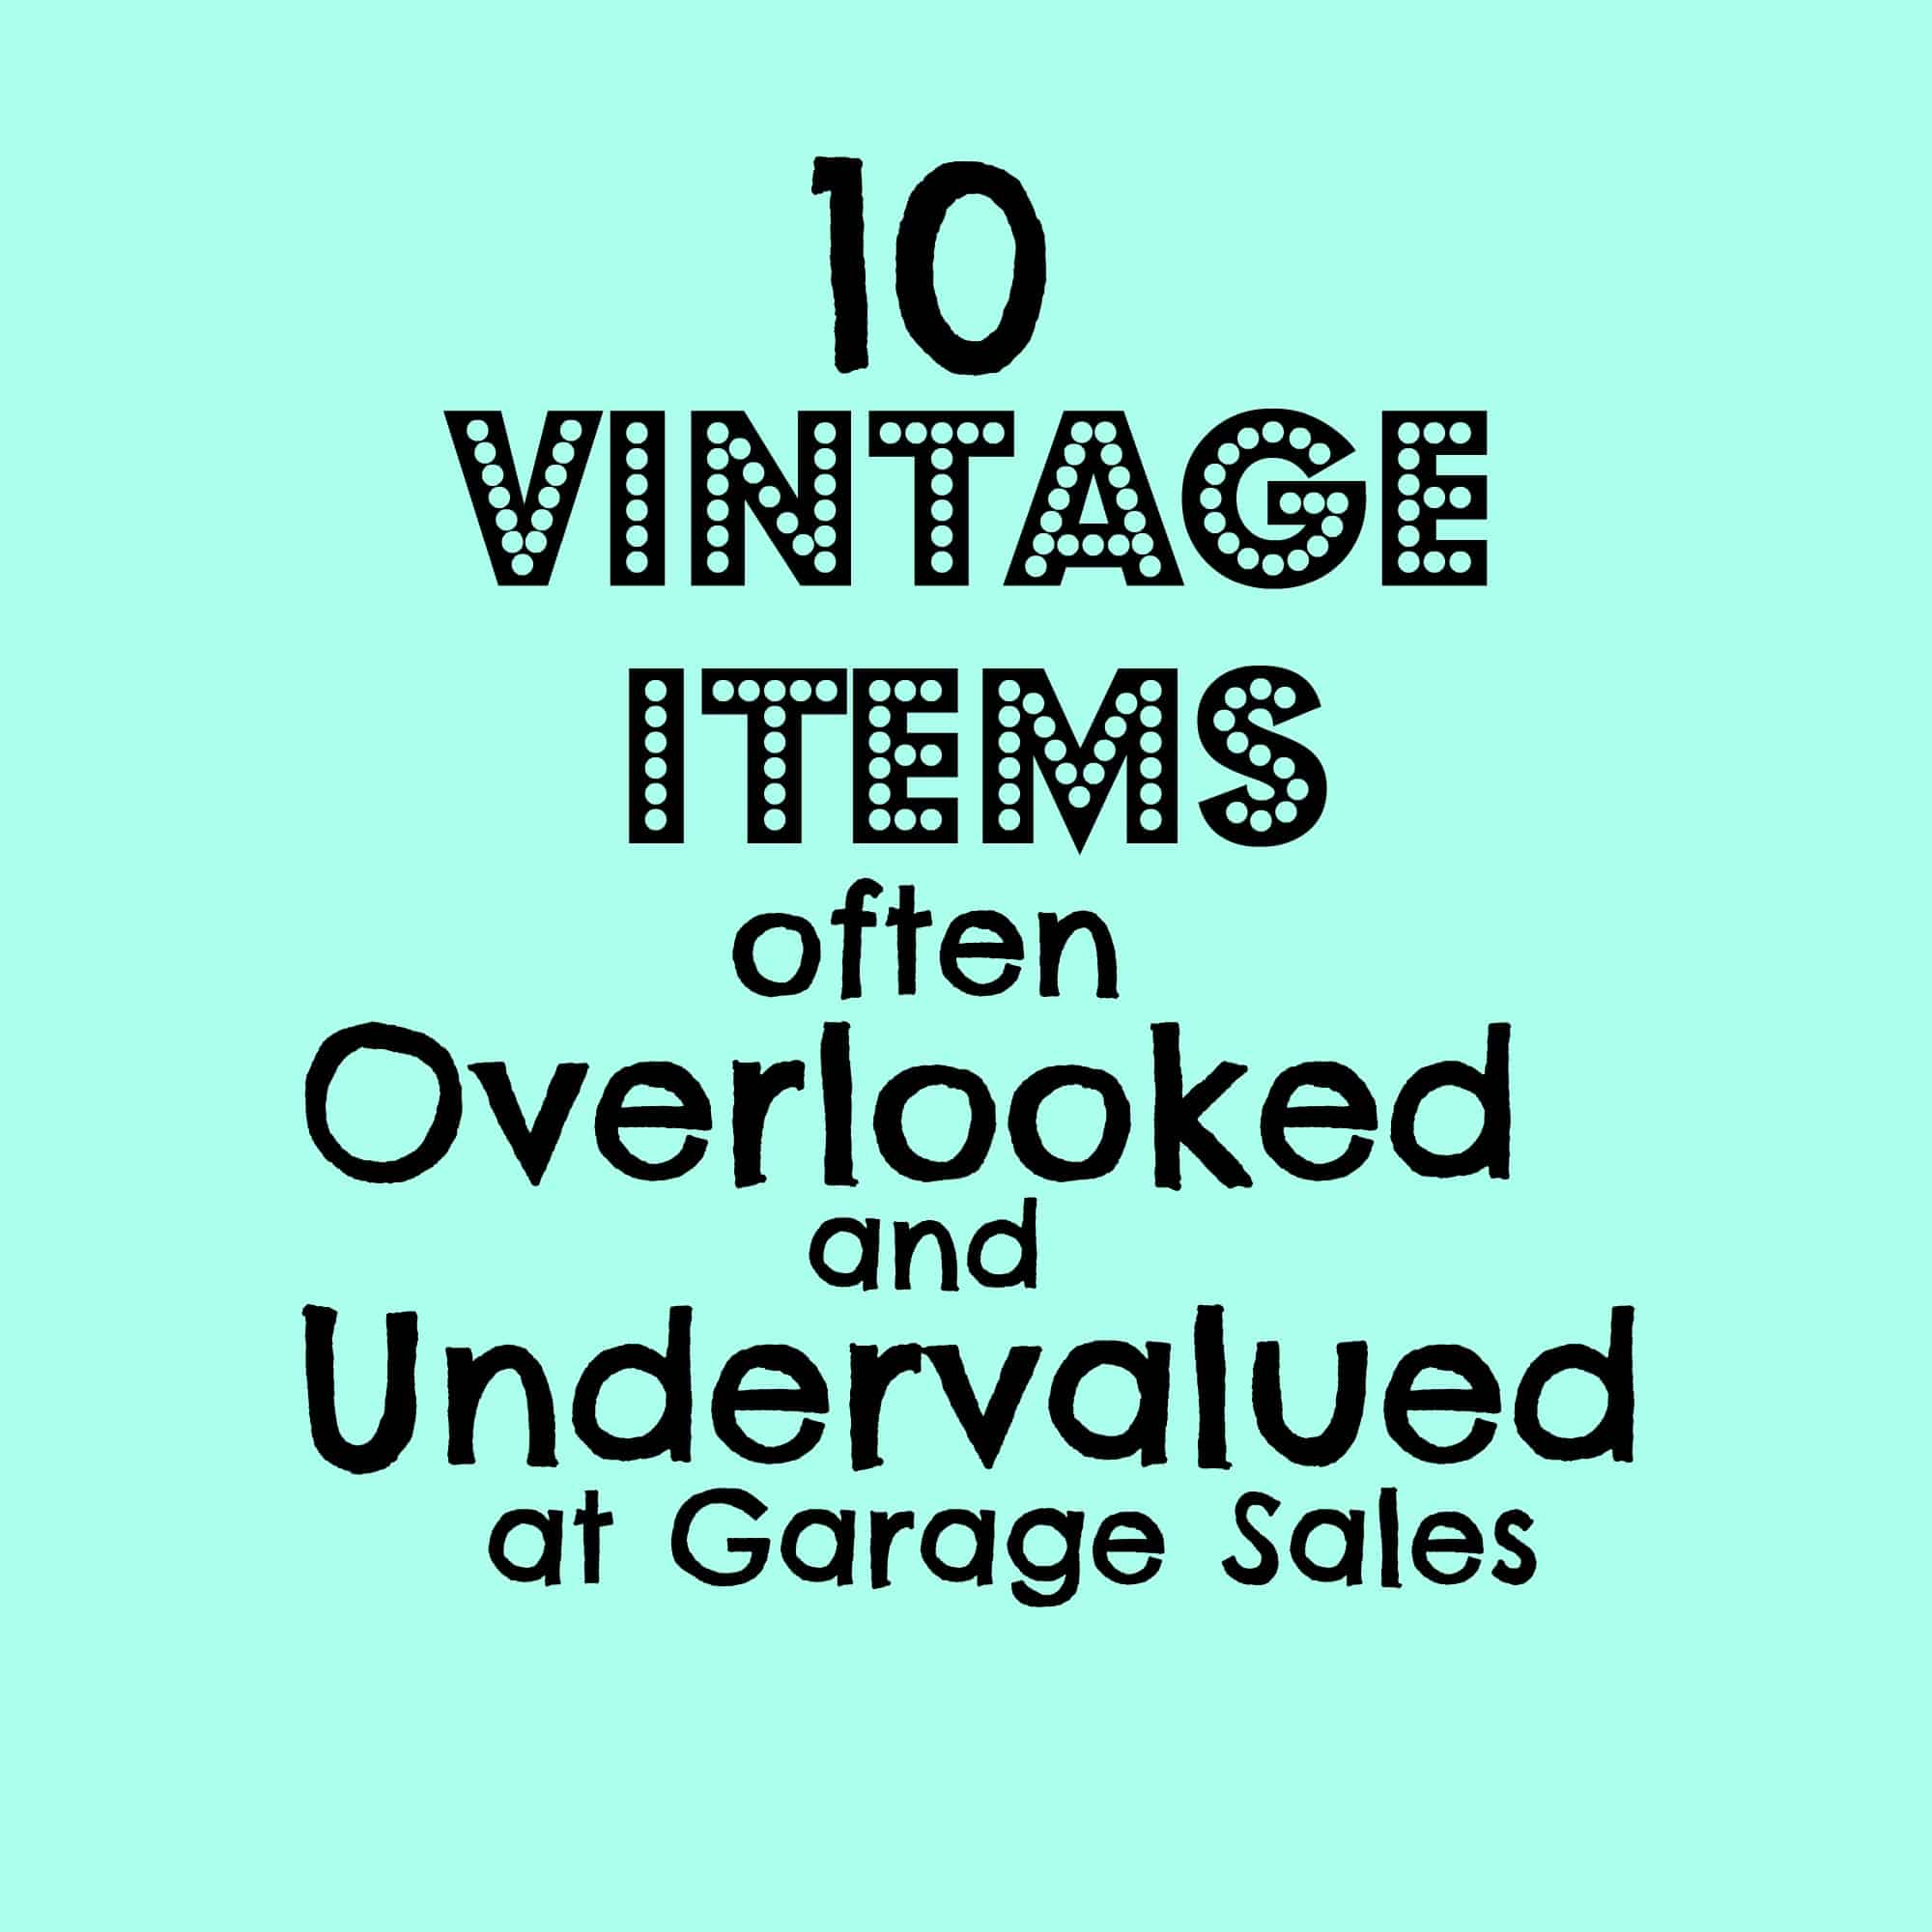 Ten overlooked & Undervalued vintage items